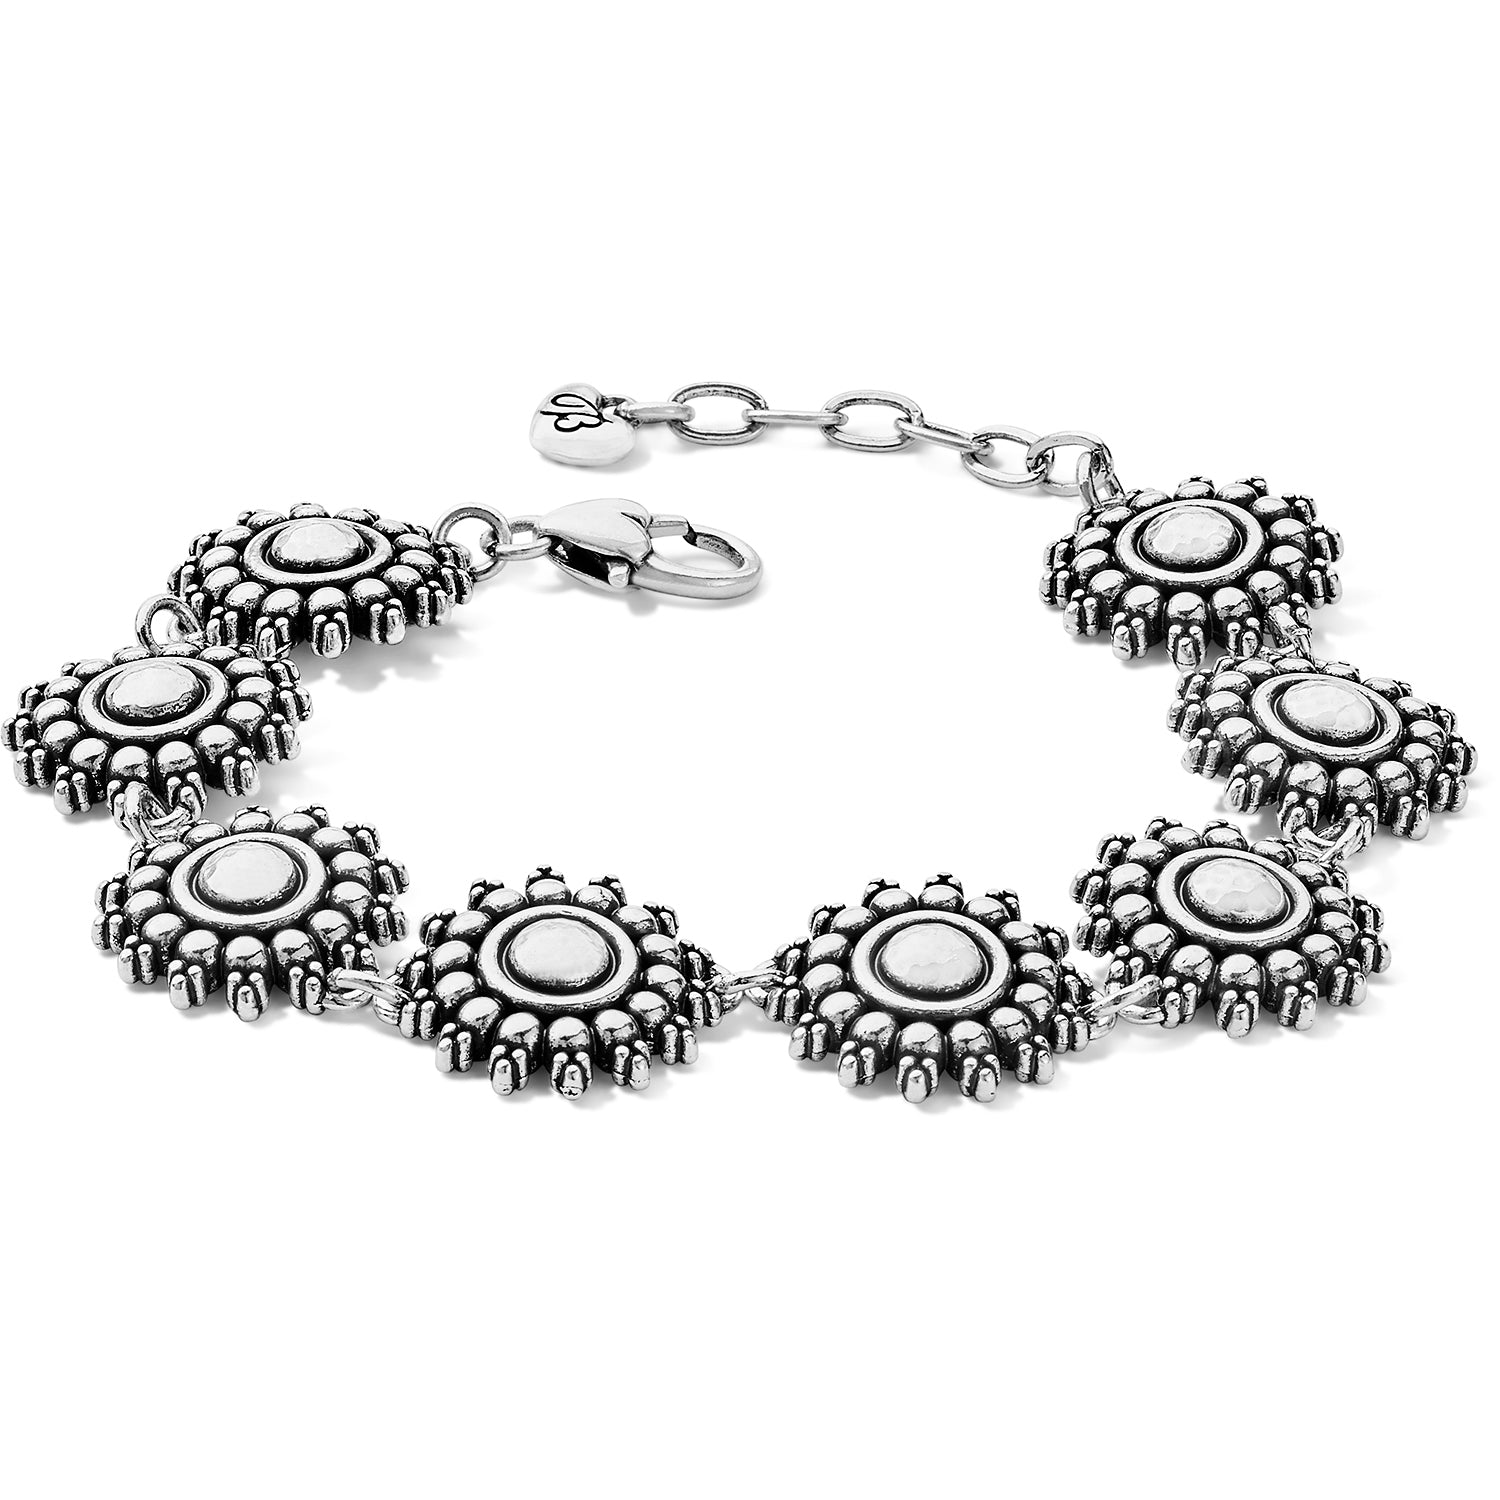 "Made up of eight sun inspired elements that form an exquisite soft bracelet.  Width: 3/4"" Closure: Lobster Claw Length: 7 1/4"" - 8 1/4"" Adjustable Finish: Silver plated"